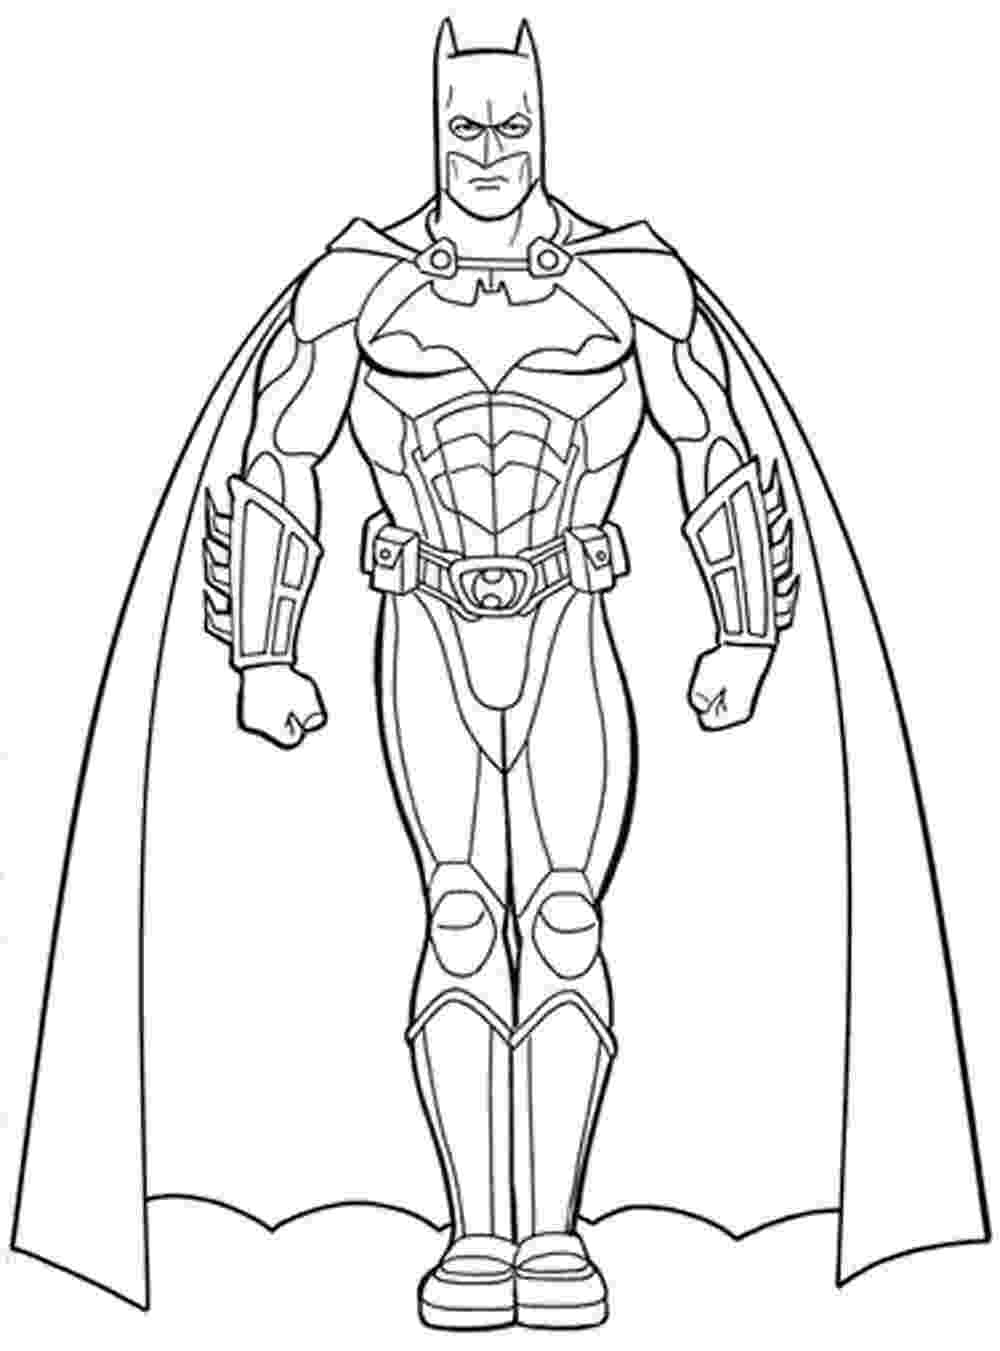 batman coloring book free pictures of batman to color download free clip art batman book coloring